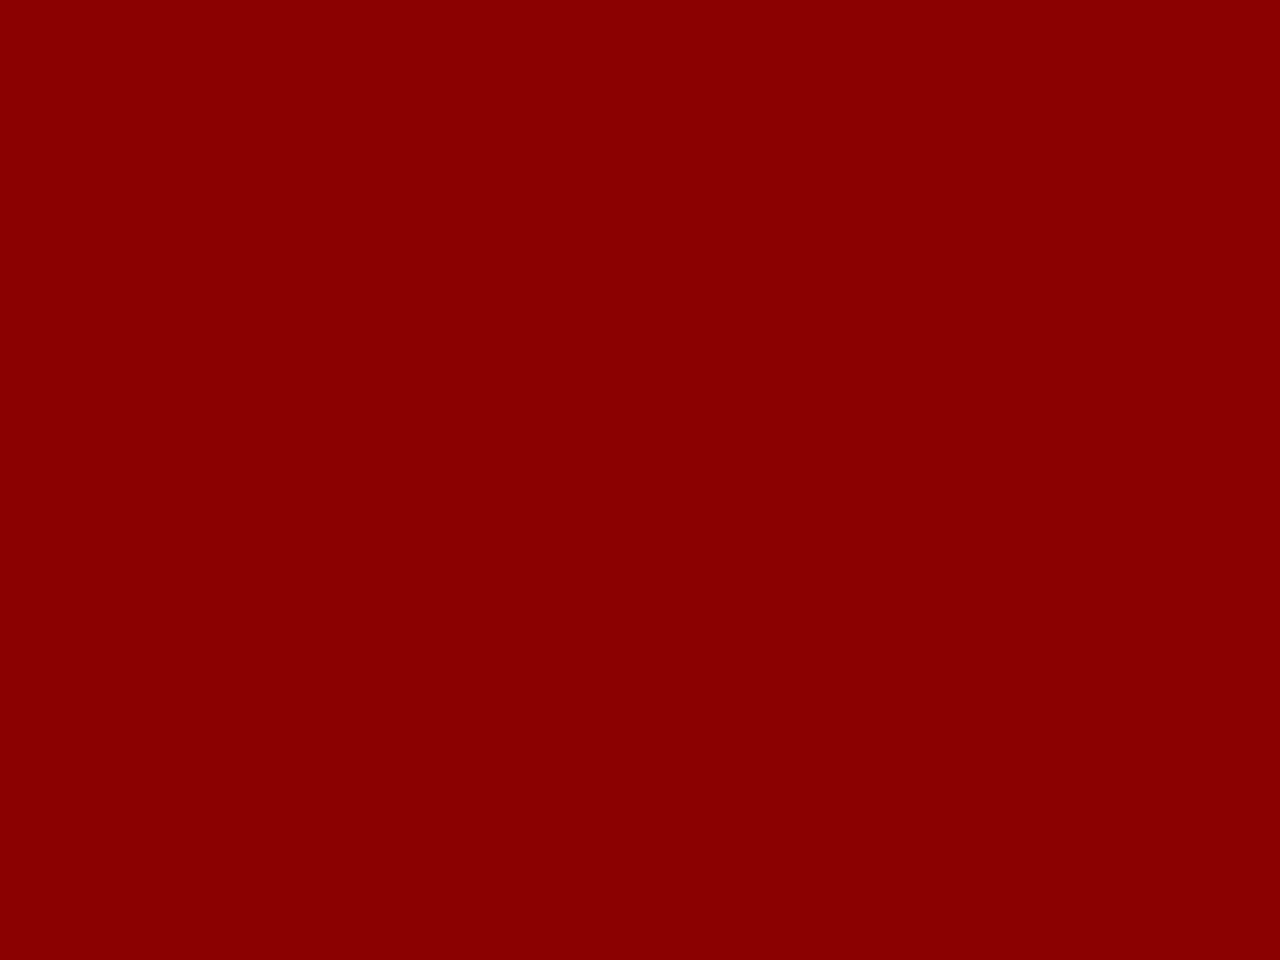 1280x960 Dark Red Solid Color Background